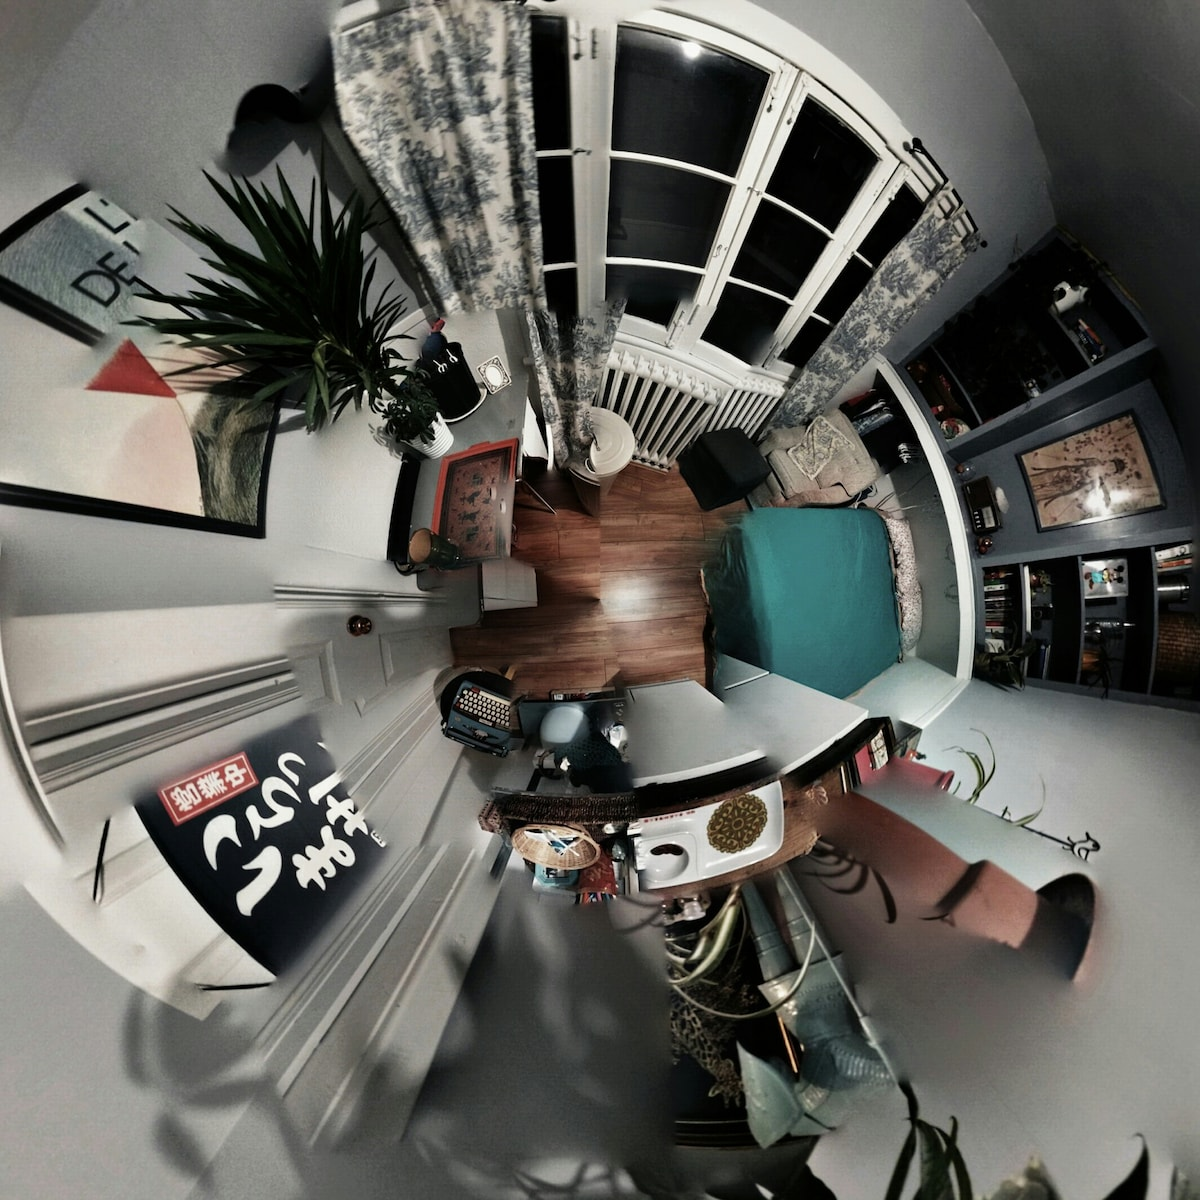 the sunroom: a 360degree Android panoramic photo lol